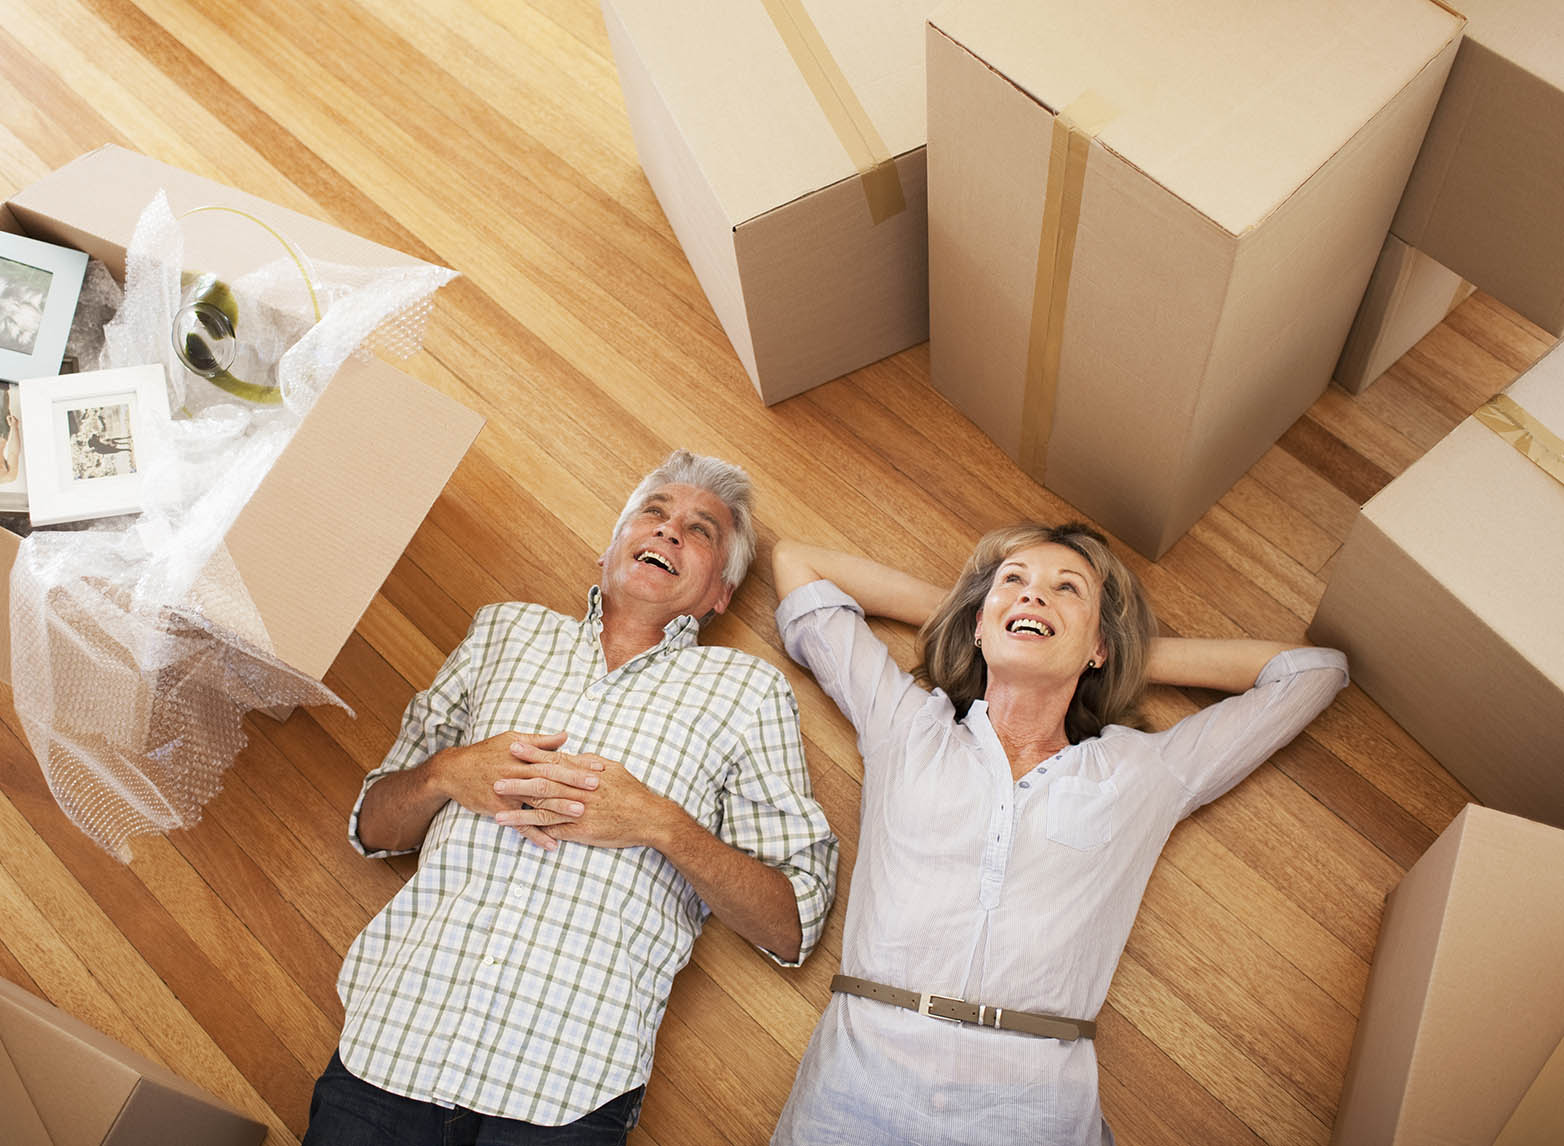 Happy older couple laying on floor surrounded by closed boxes